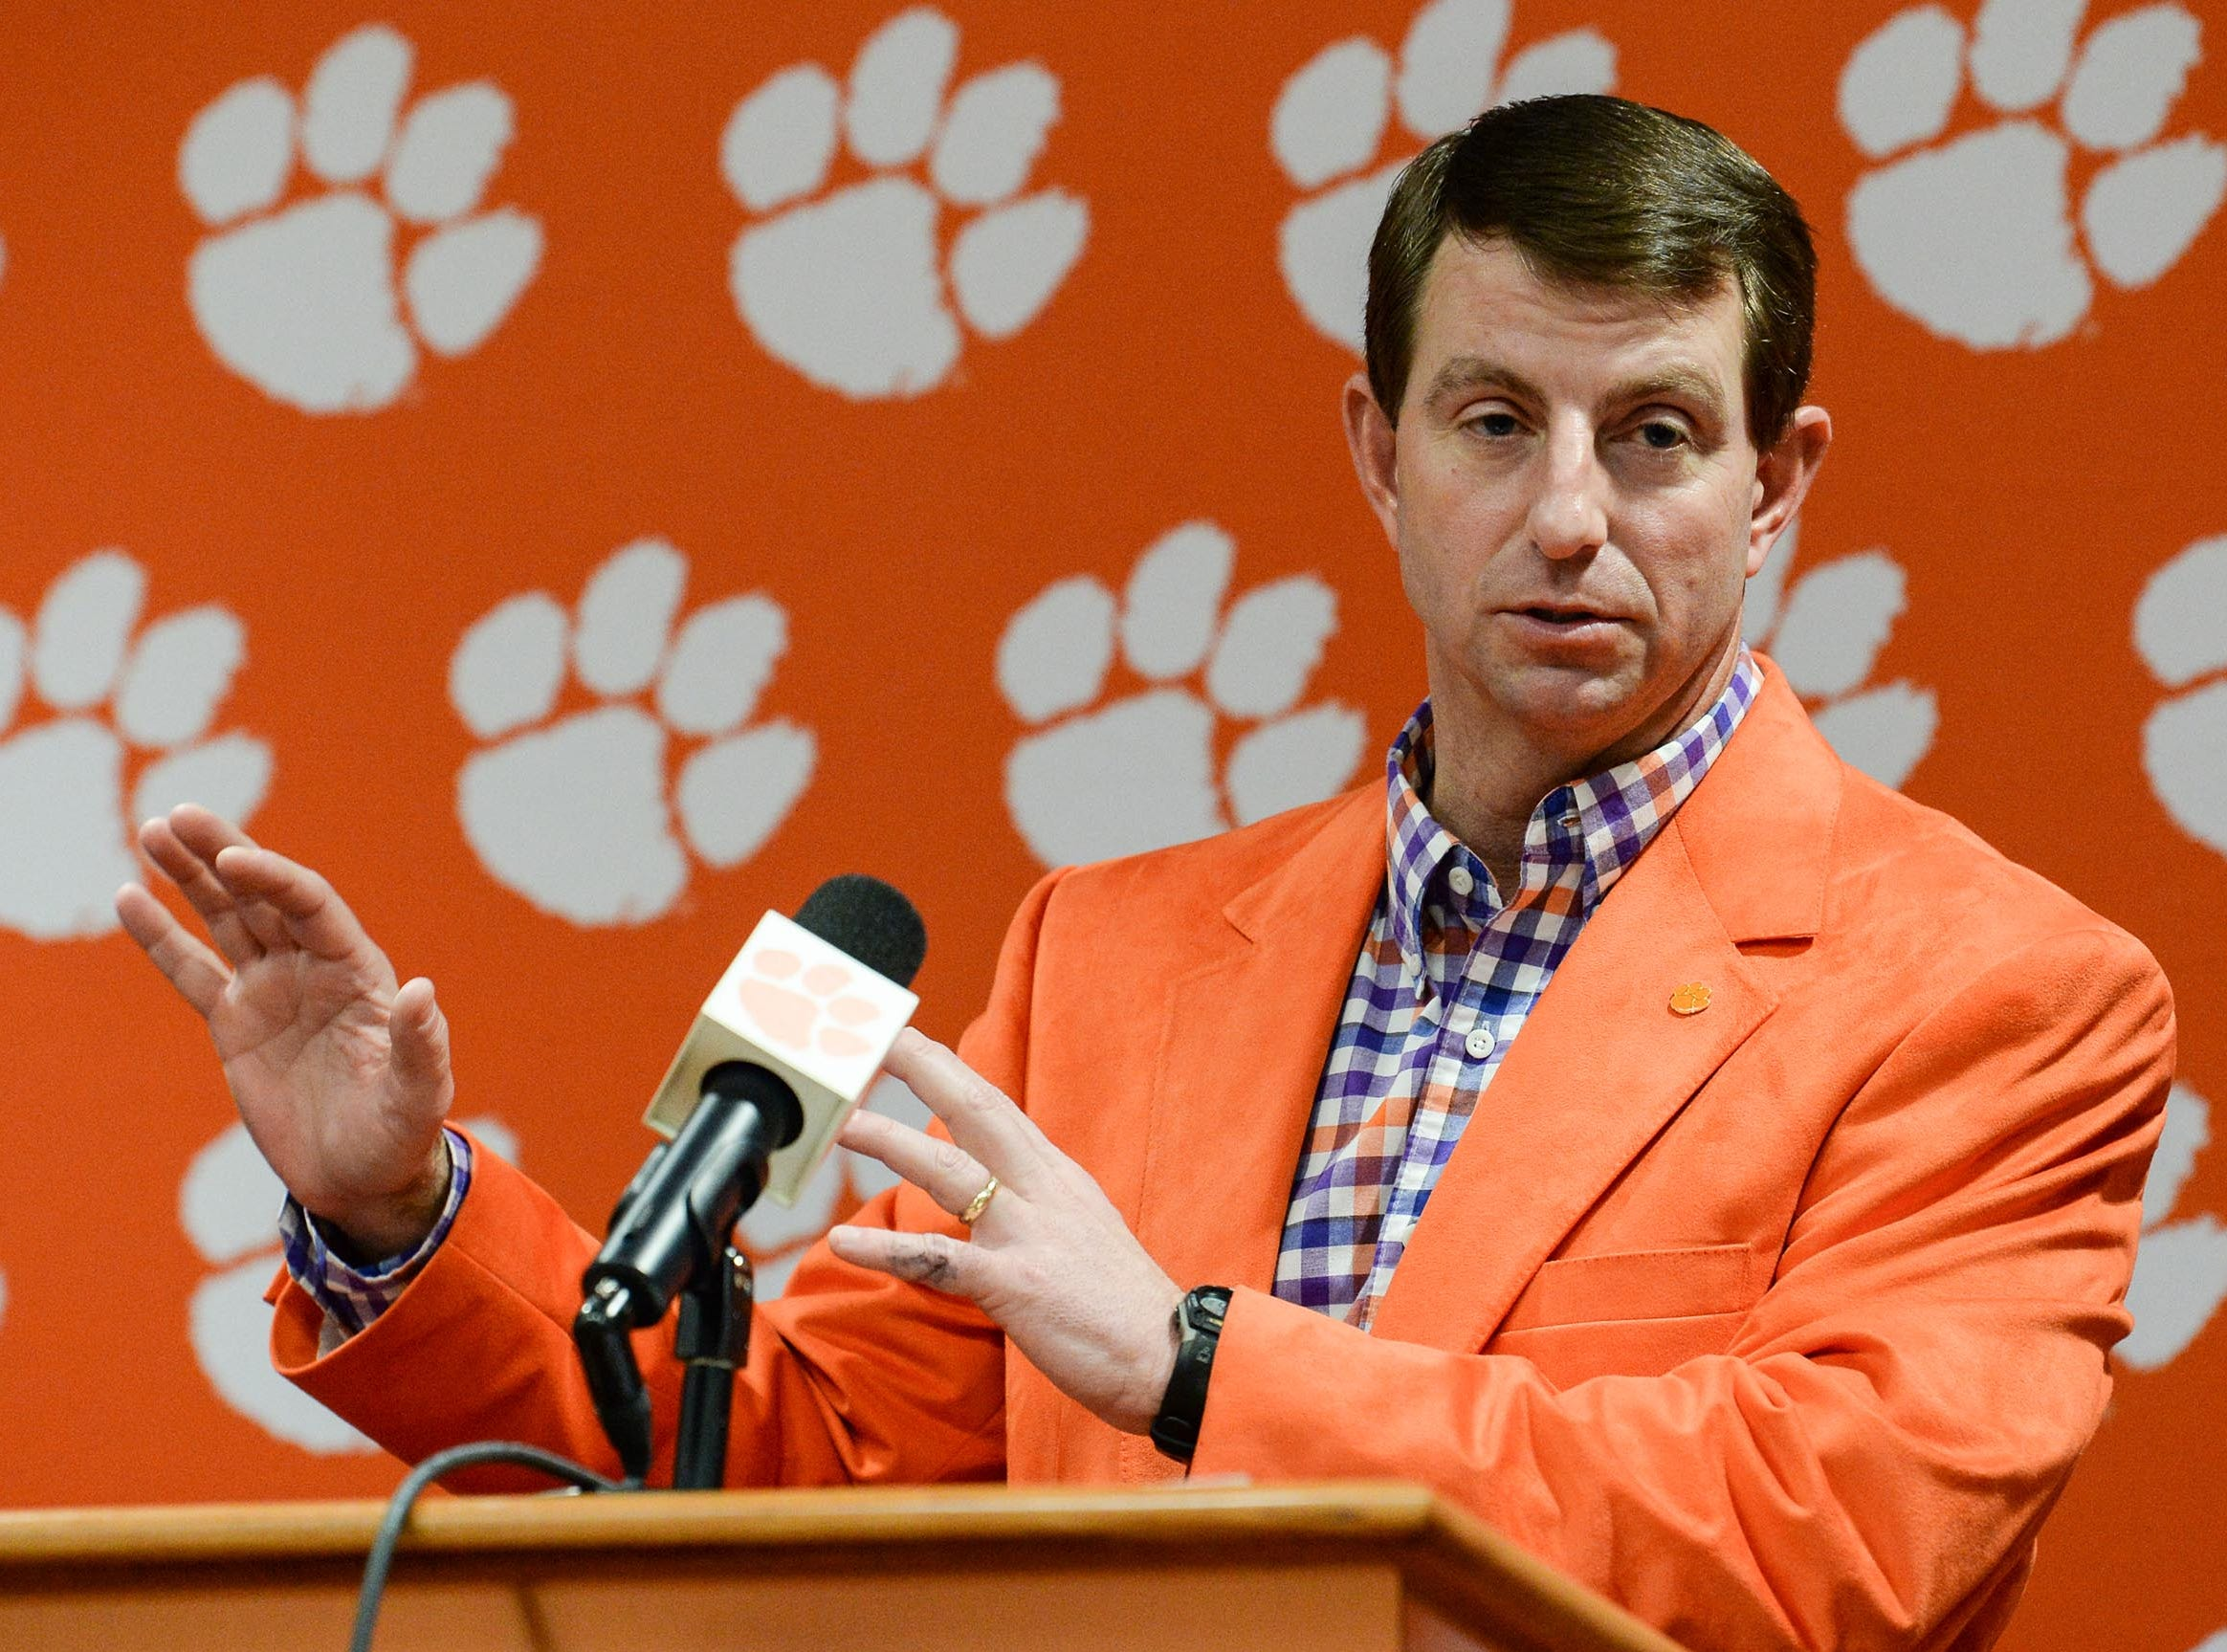 Clemson football head coach Dabo Swinney speaks during National Letter of Intent signing day press conference in Clemson Wednesday, February 6, 2019.